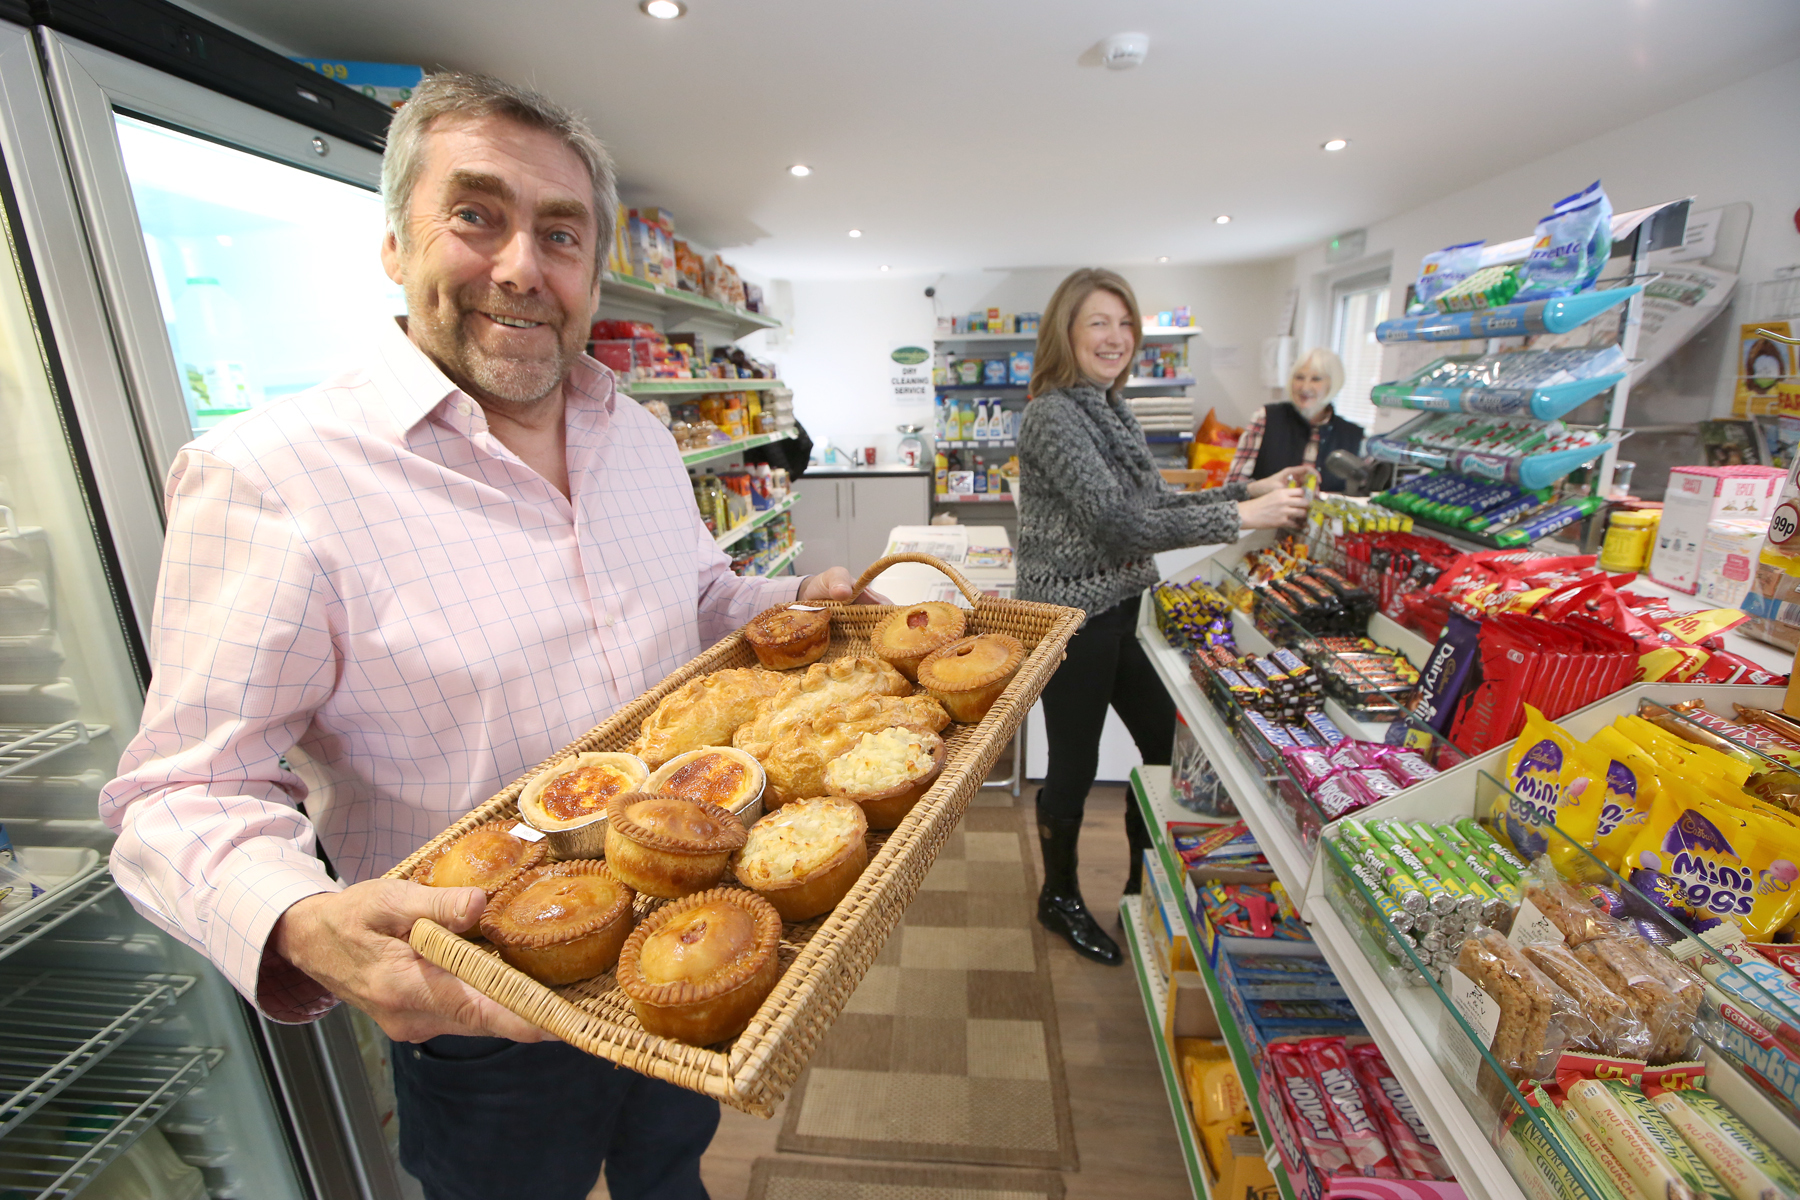 Cllr Stephen Watson is pictured with shop volunteers Patricia Watson (behind the counter) and Amanda Smith (stacking shelves).